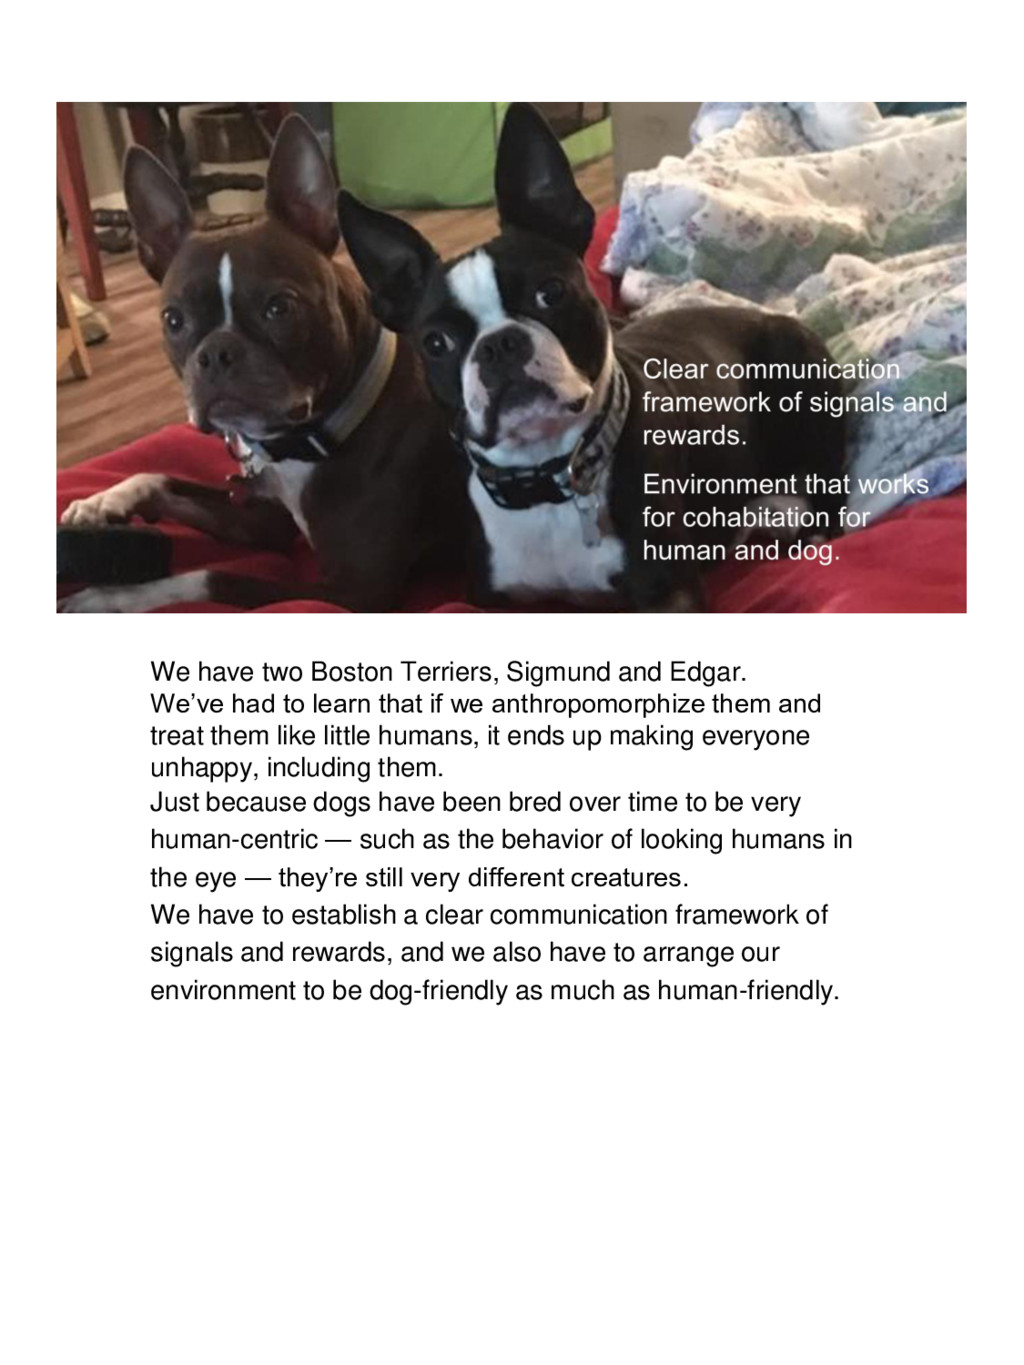 We have two Boston Terriers, Sigmund and Edgar....